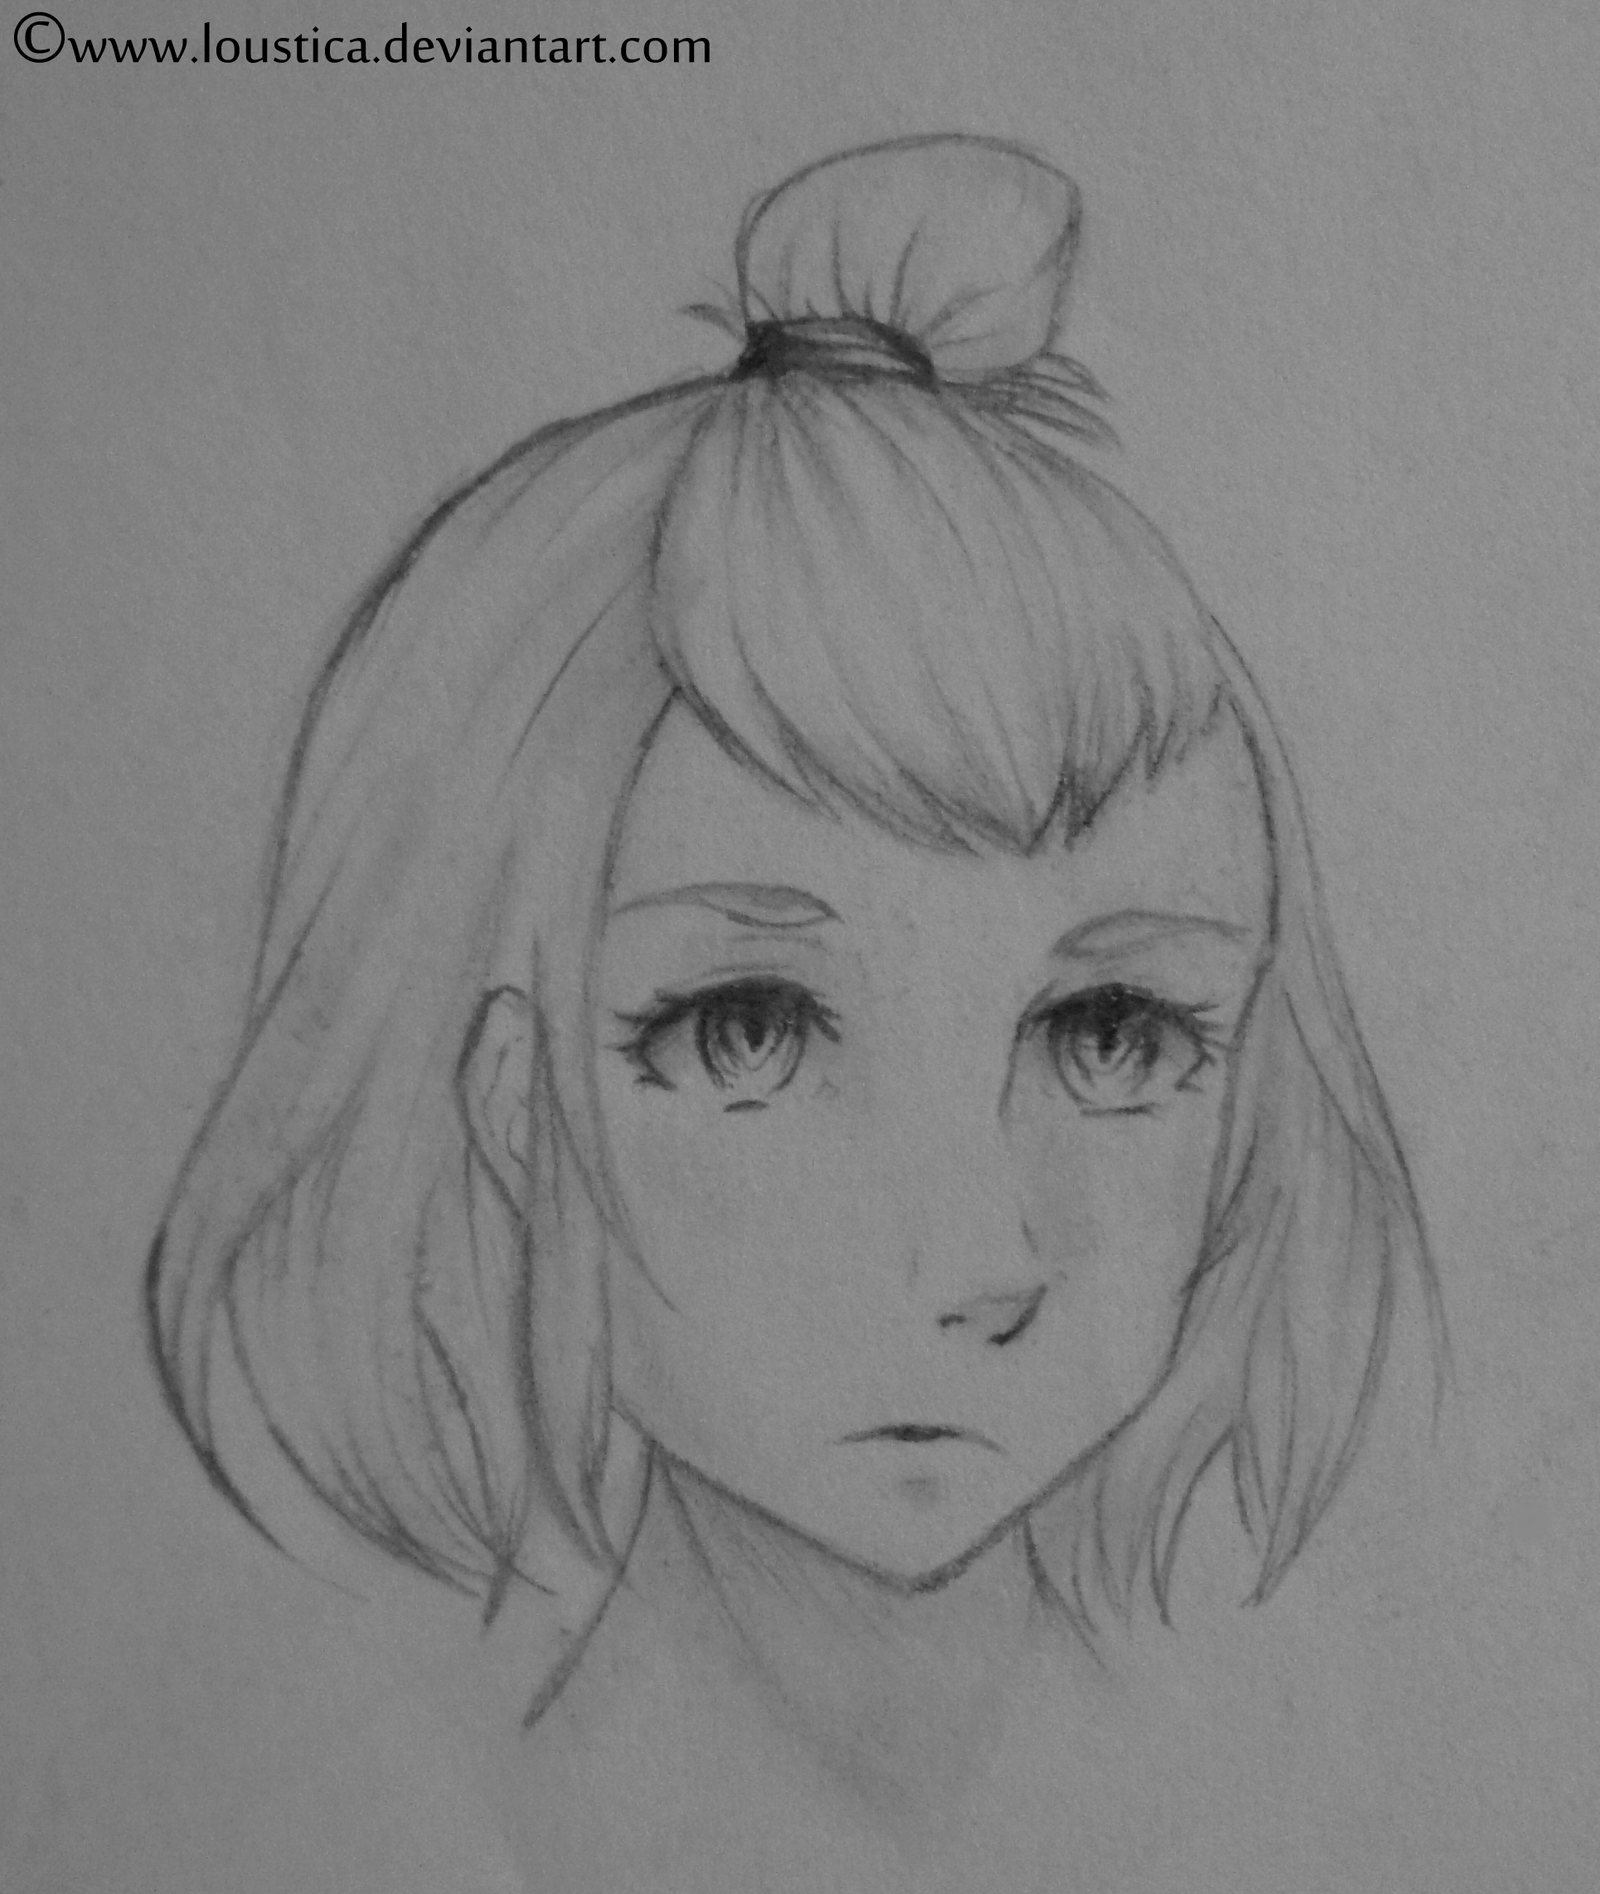 Sketch - Cute Girly Face By Loustica On DeviantArt